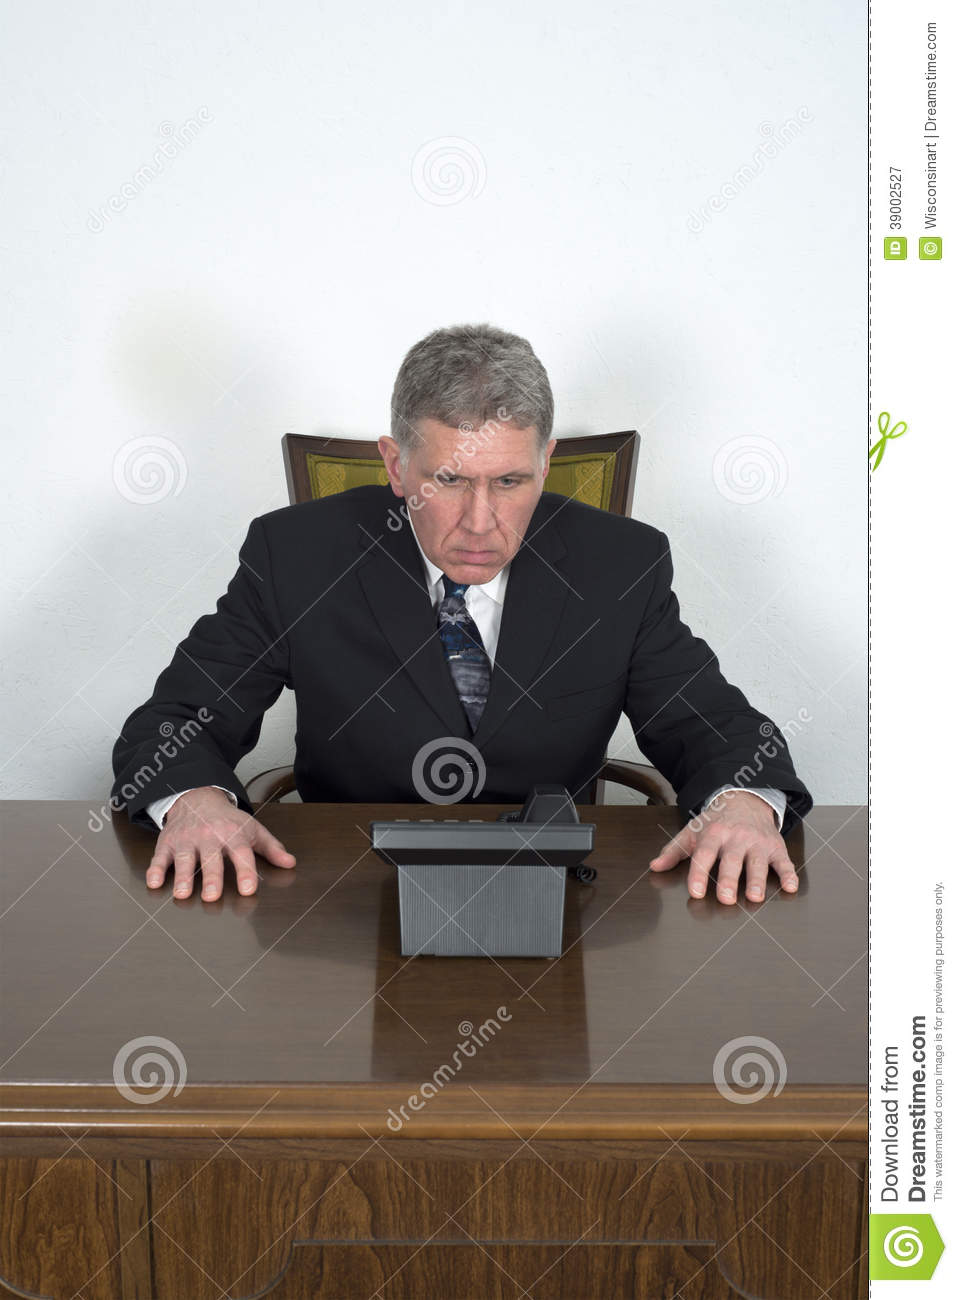 Download Businessman Business Sales Marketing Phone Call Stock Image - Image of concerns, wait: 39002527